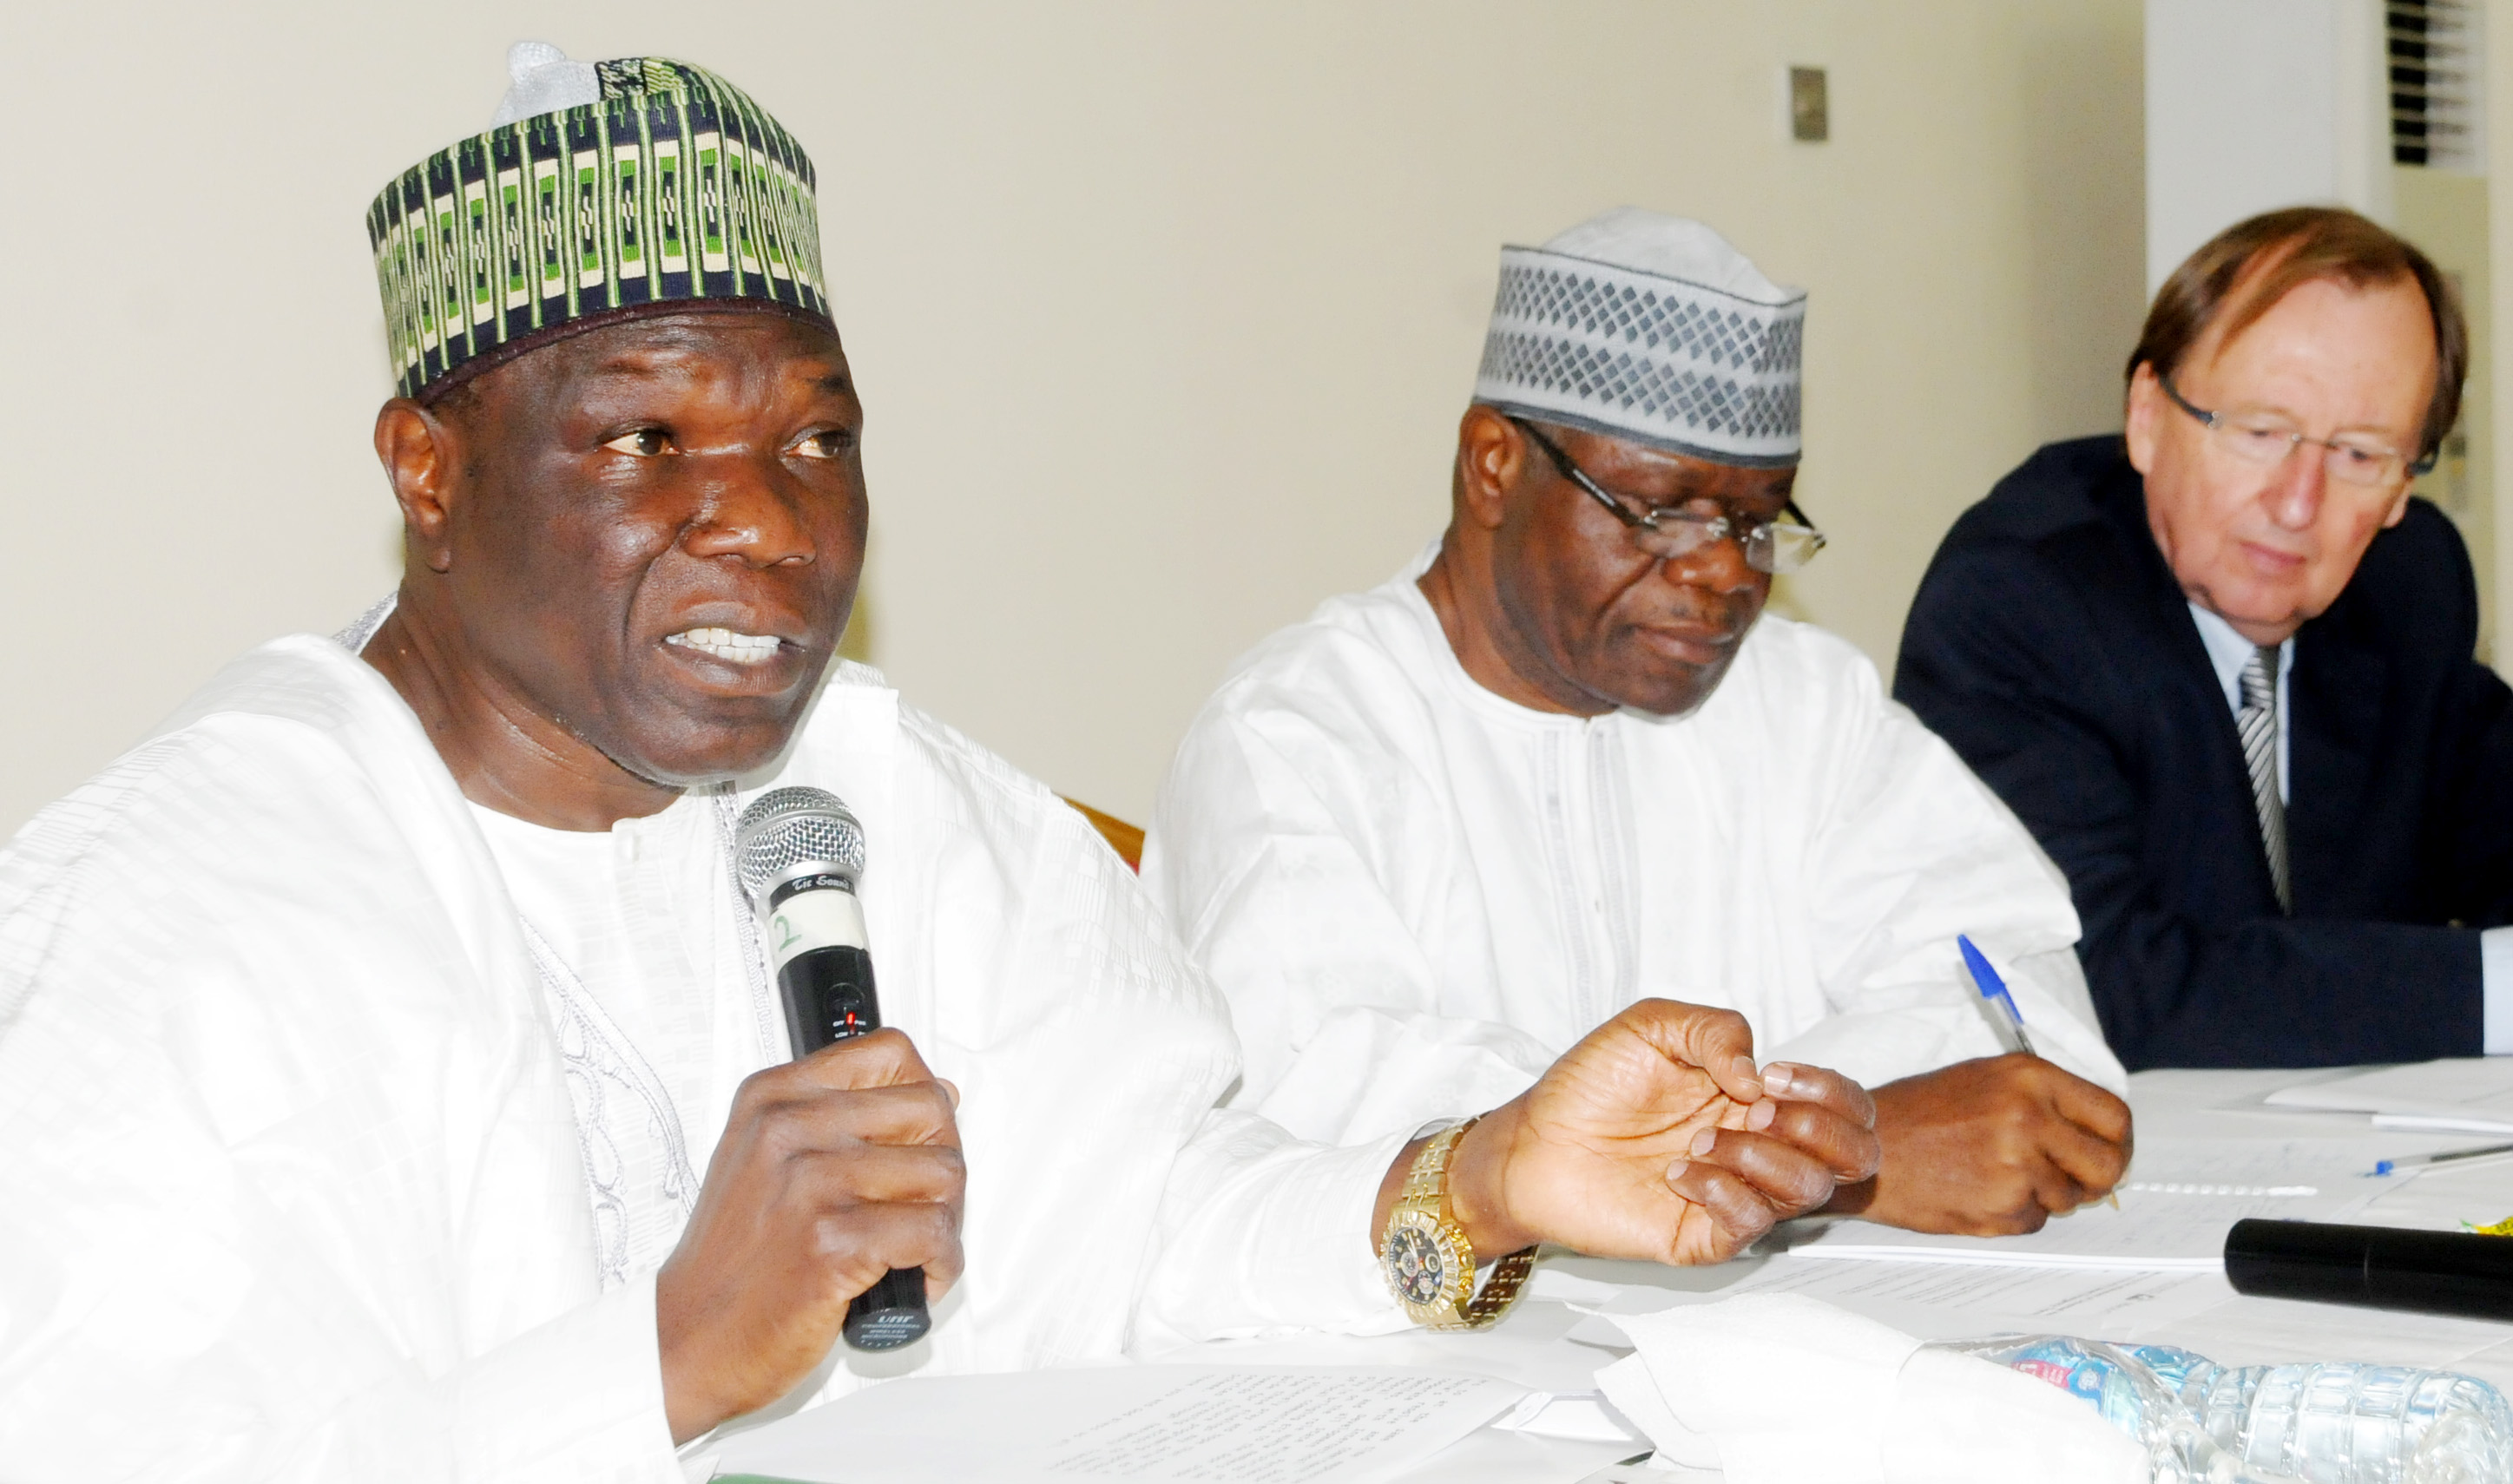 PIC.3. FROM LEFT: PRESIDENT, NATIONAL UNION OF ROAD TRANSPORT WORKERS, ALHAJI NAJEEM   YASIN; GUEST SPEAKER, DR EMMANUEL SOKPO, AND CHAIRMAN, HEALTH PARTNERS INTERNATIONAL, MR   BRYAN HADDON, AT A SEMINAR ON ACCELERATING THE ATTAINMENT OF UNVERSAL HEALTH COVERAGE   THROUGH COMMUNITY BASED EMERGENCY TRANSPORT SCHEMES IN ABUJA ON FRIDAY (20/11/15). 7290/20/11/2015/JAU/CH/NAN